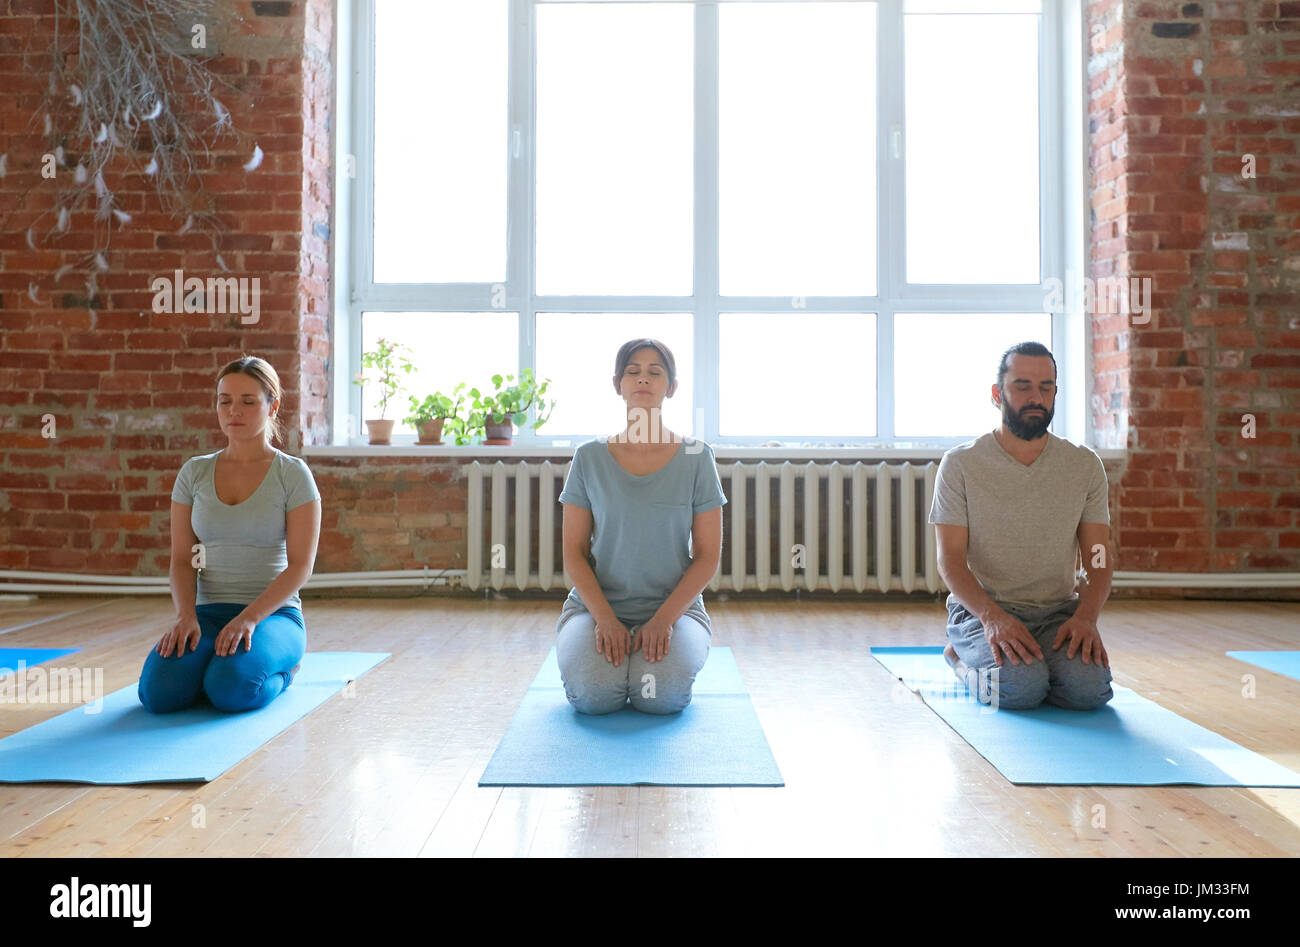 group of people meditating at yoga studio - Stock Image